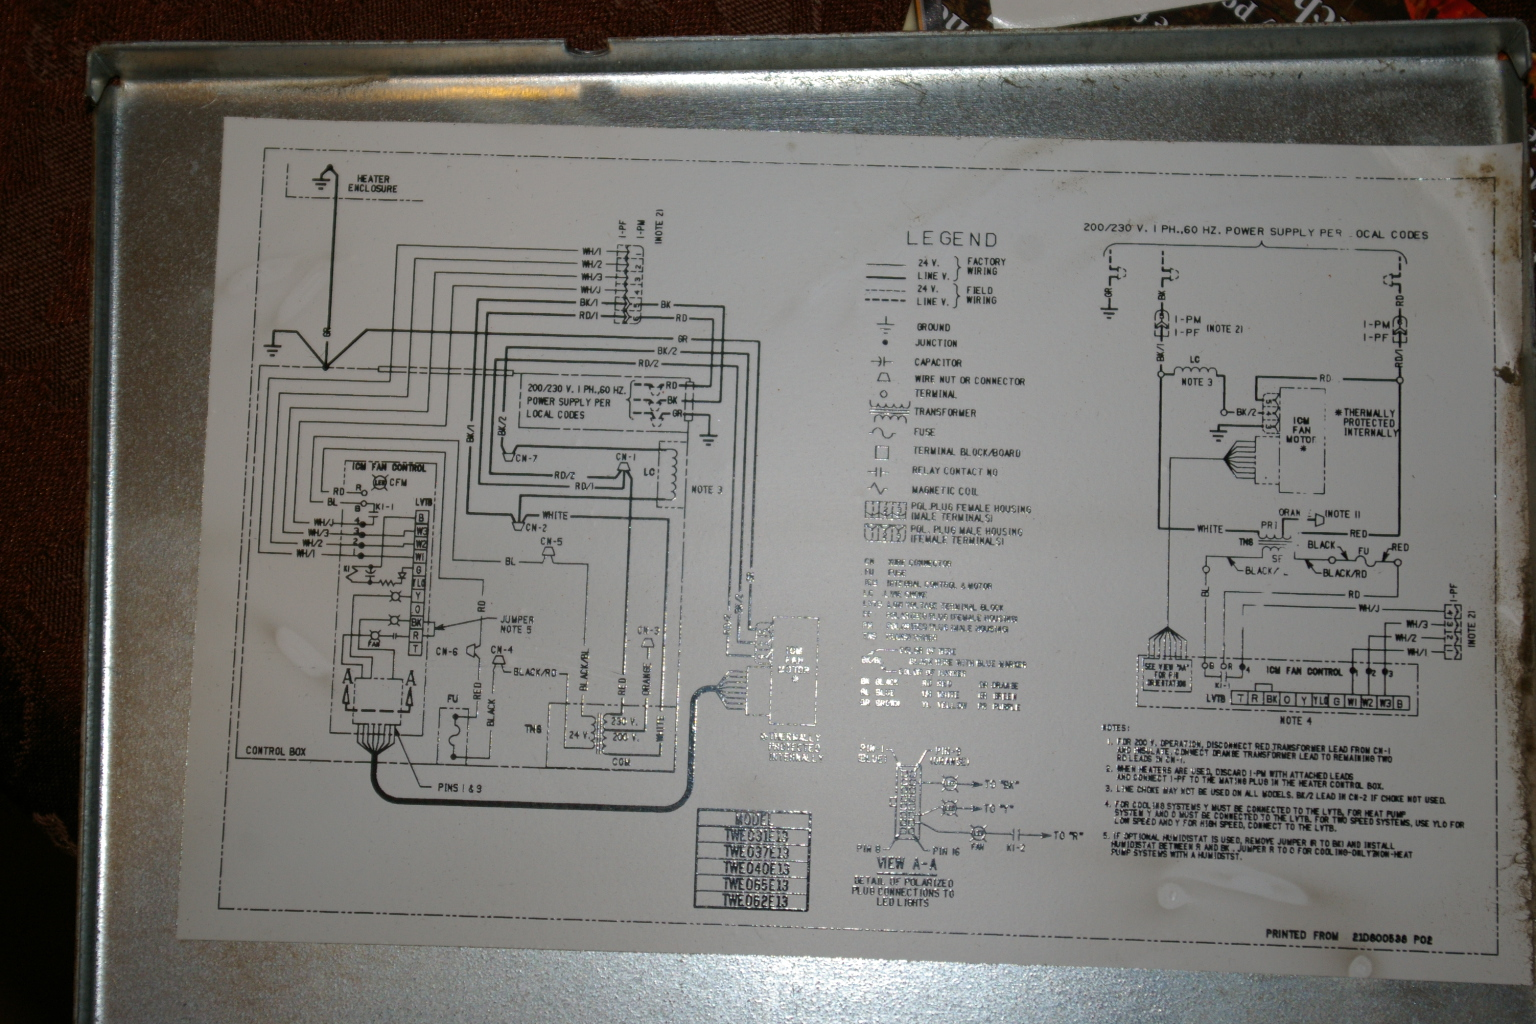 wiring diagram for trane gas furnace images pump air handler wiring diagram car parts and wiring diagram images